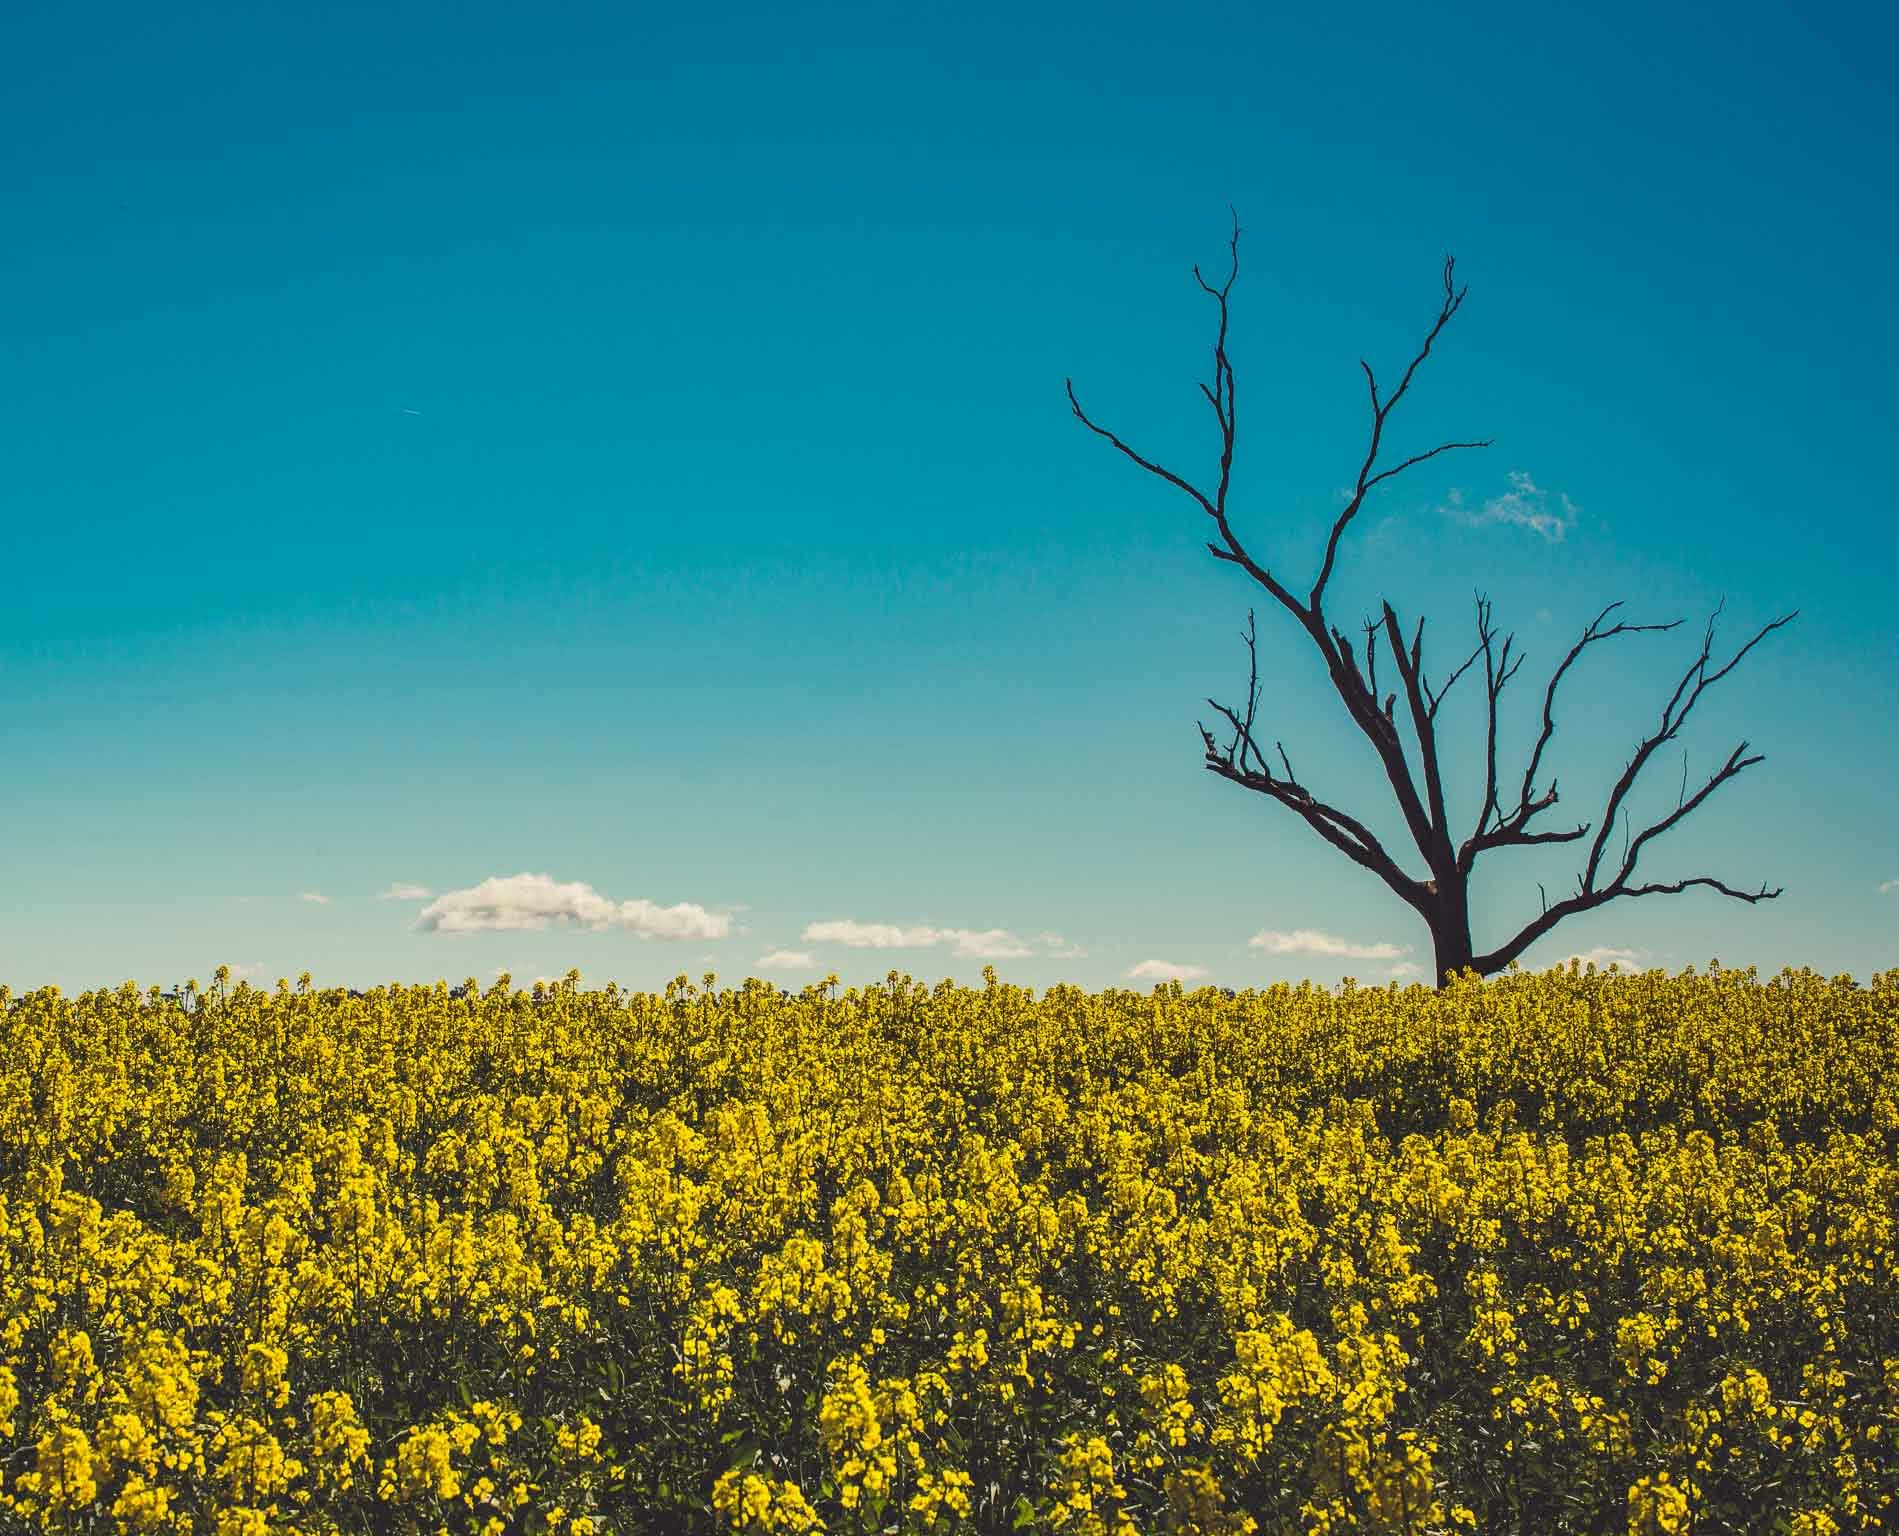 Cootamundra's Canola Fields & The Sugar Pine Forest (NSW), Alfonso Calero, Riverina, NSW, canola flowers, dead tree